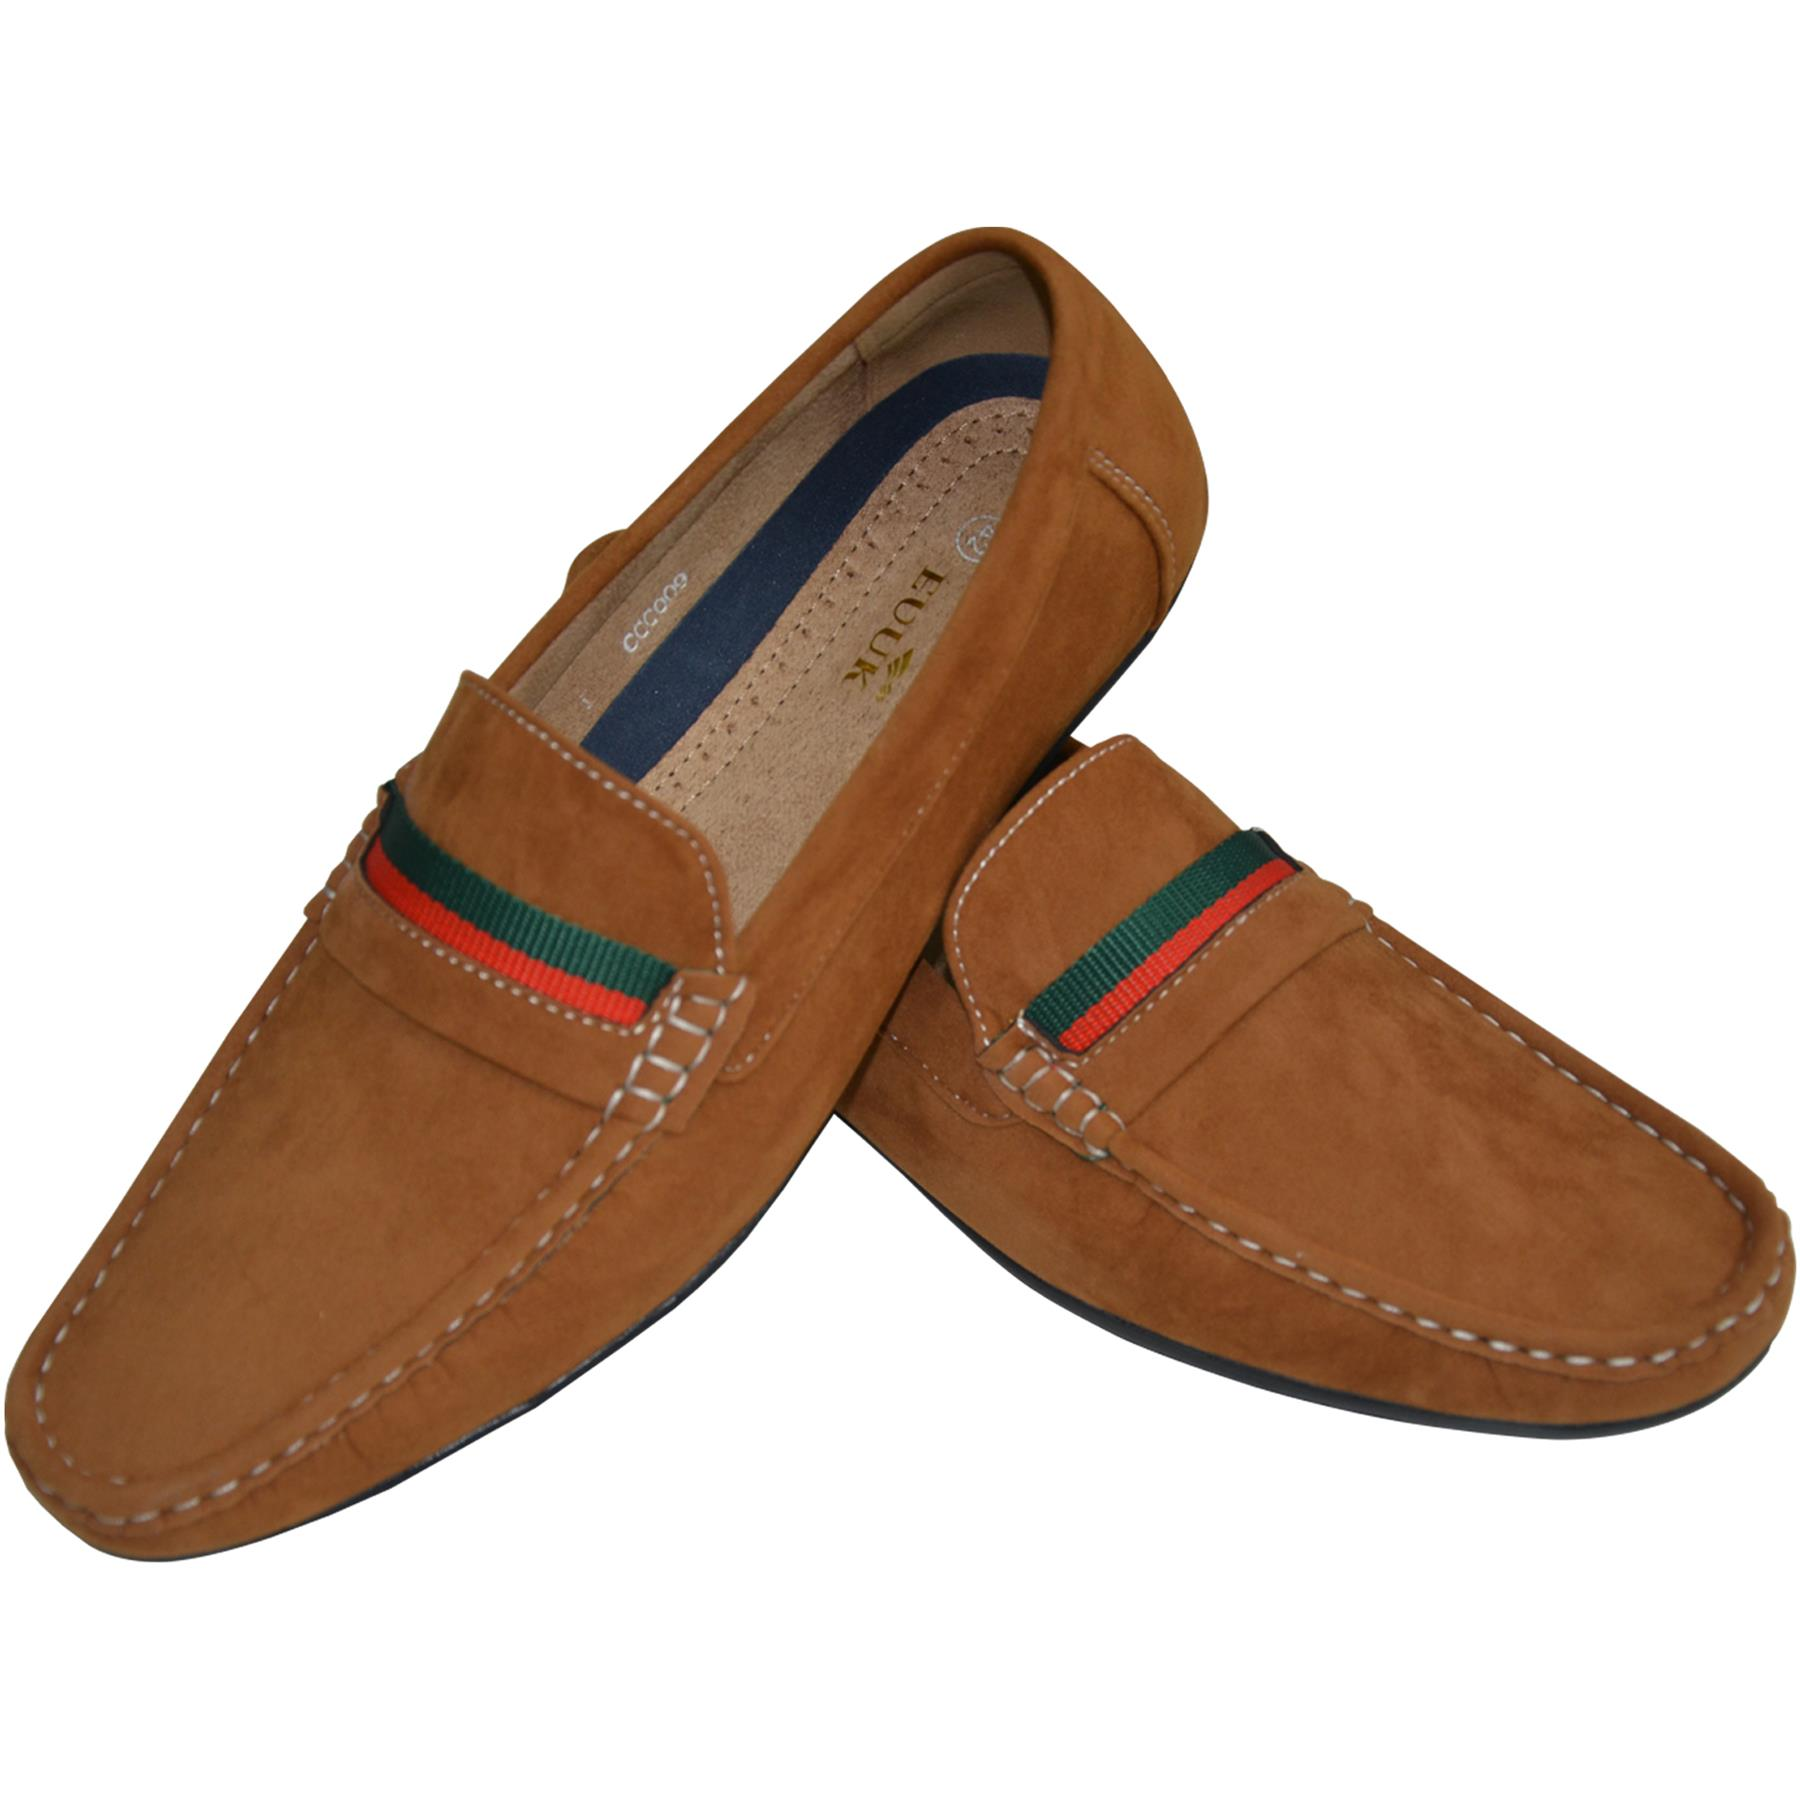 Mens-Suede-Loafers-Shoes-Moccasin-Slip-On-Casual-Boat-Driving-UK-Sizes-6-12 thumbnail 28